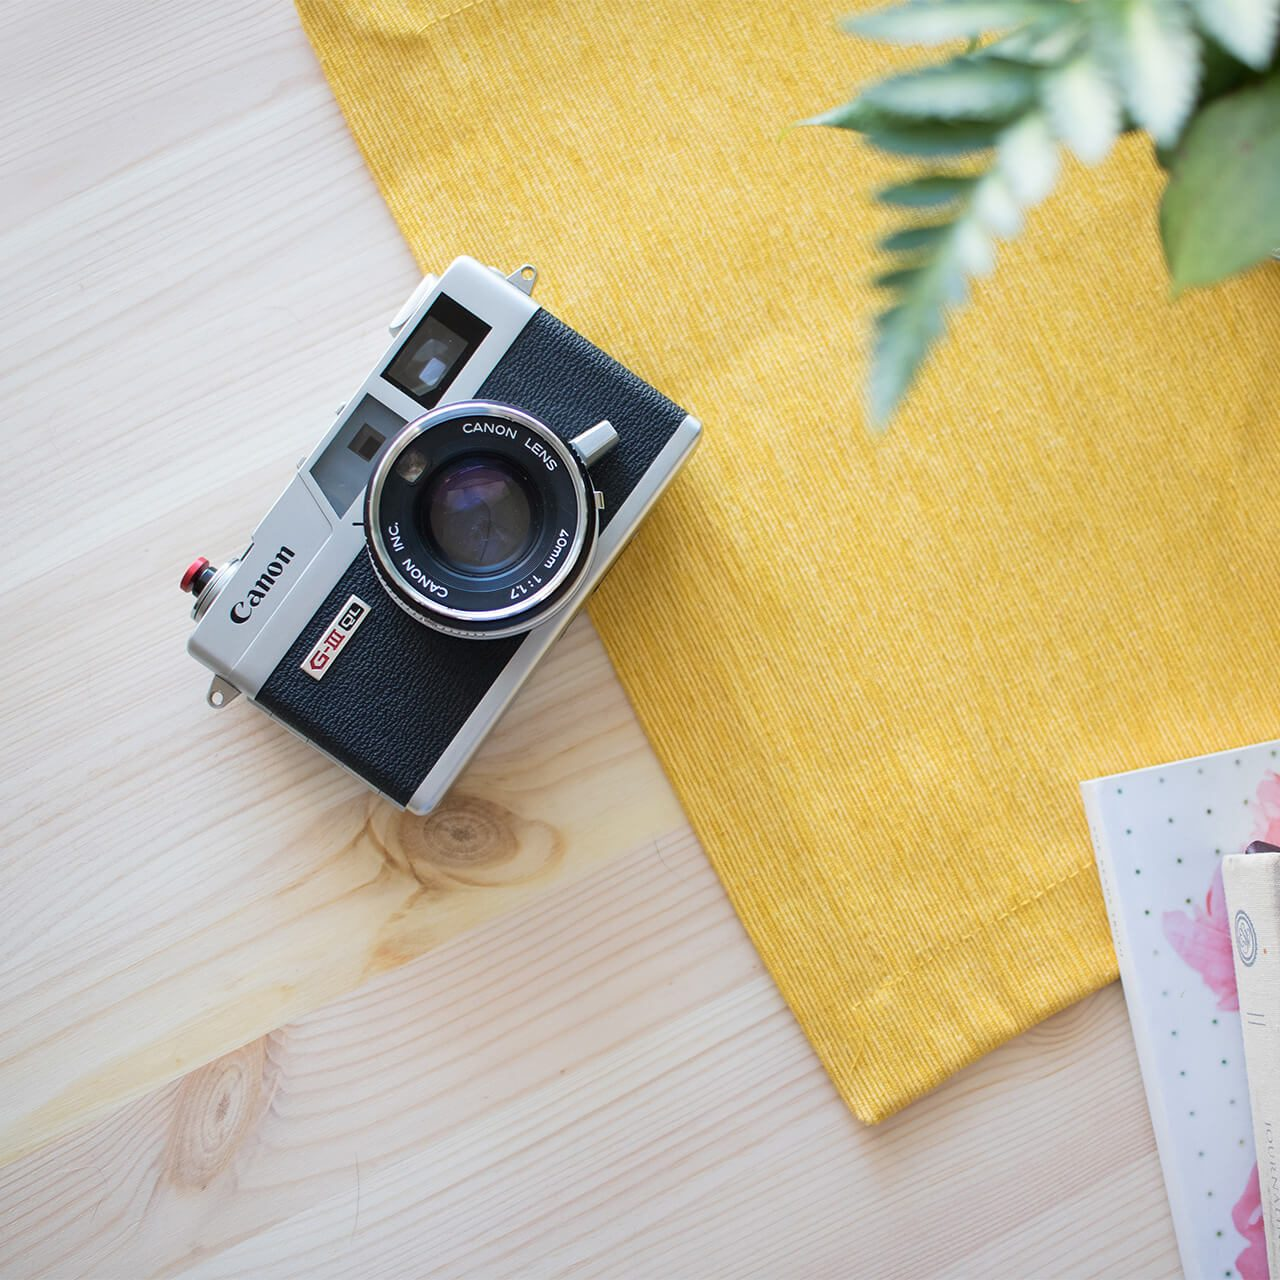 Cannon: The Best Camera You Can Buy Today For Great Price